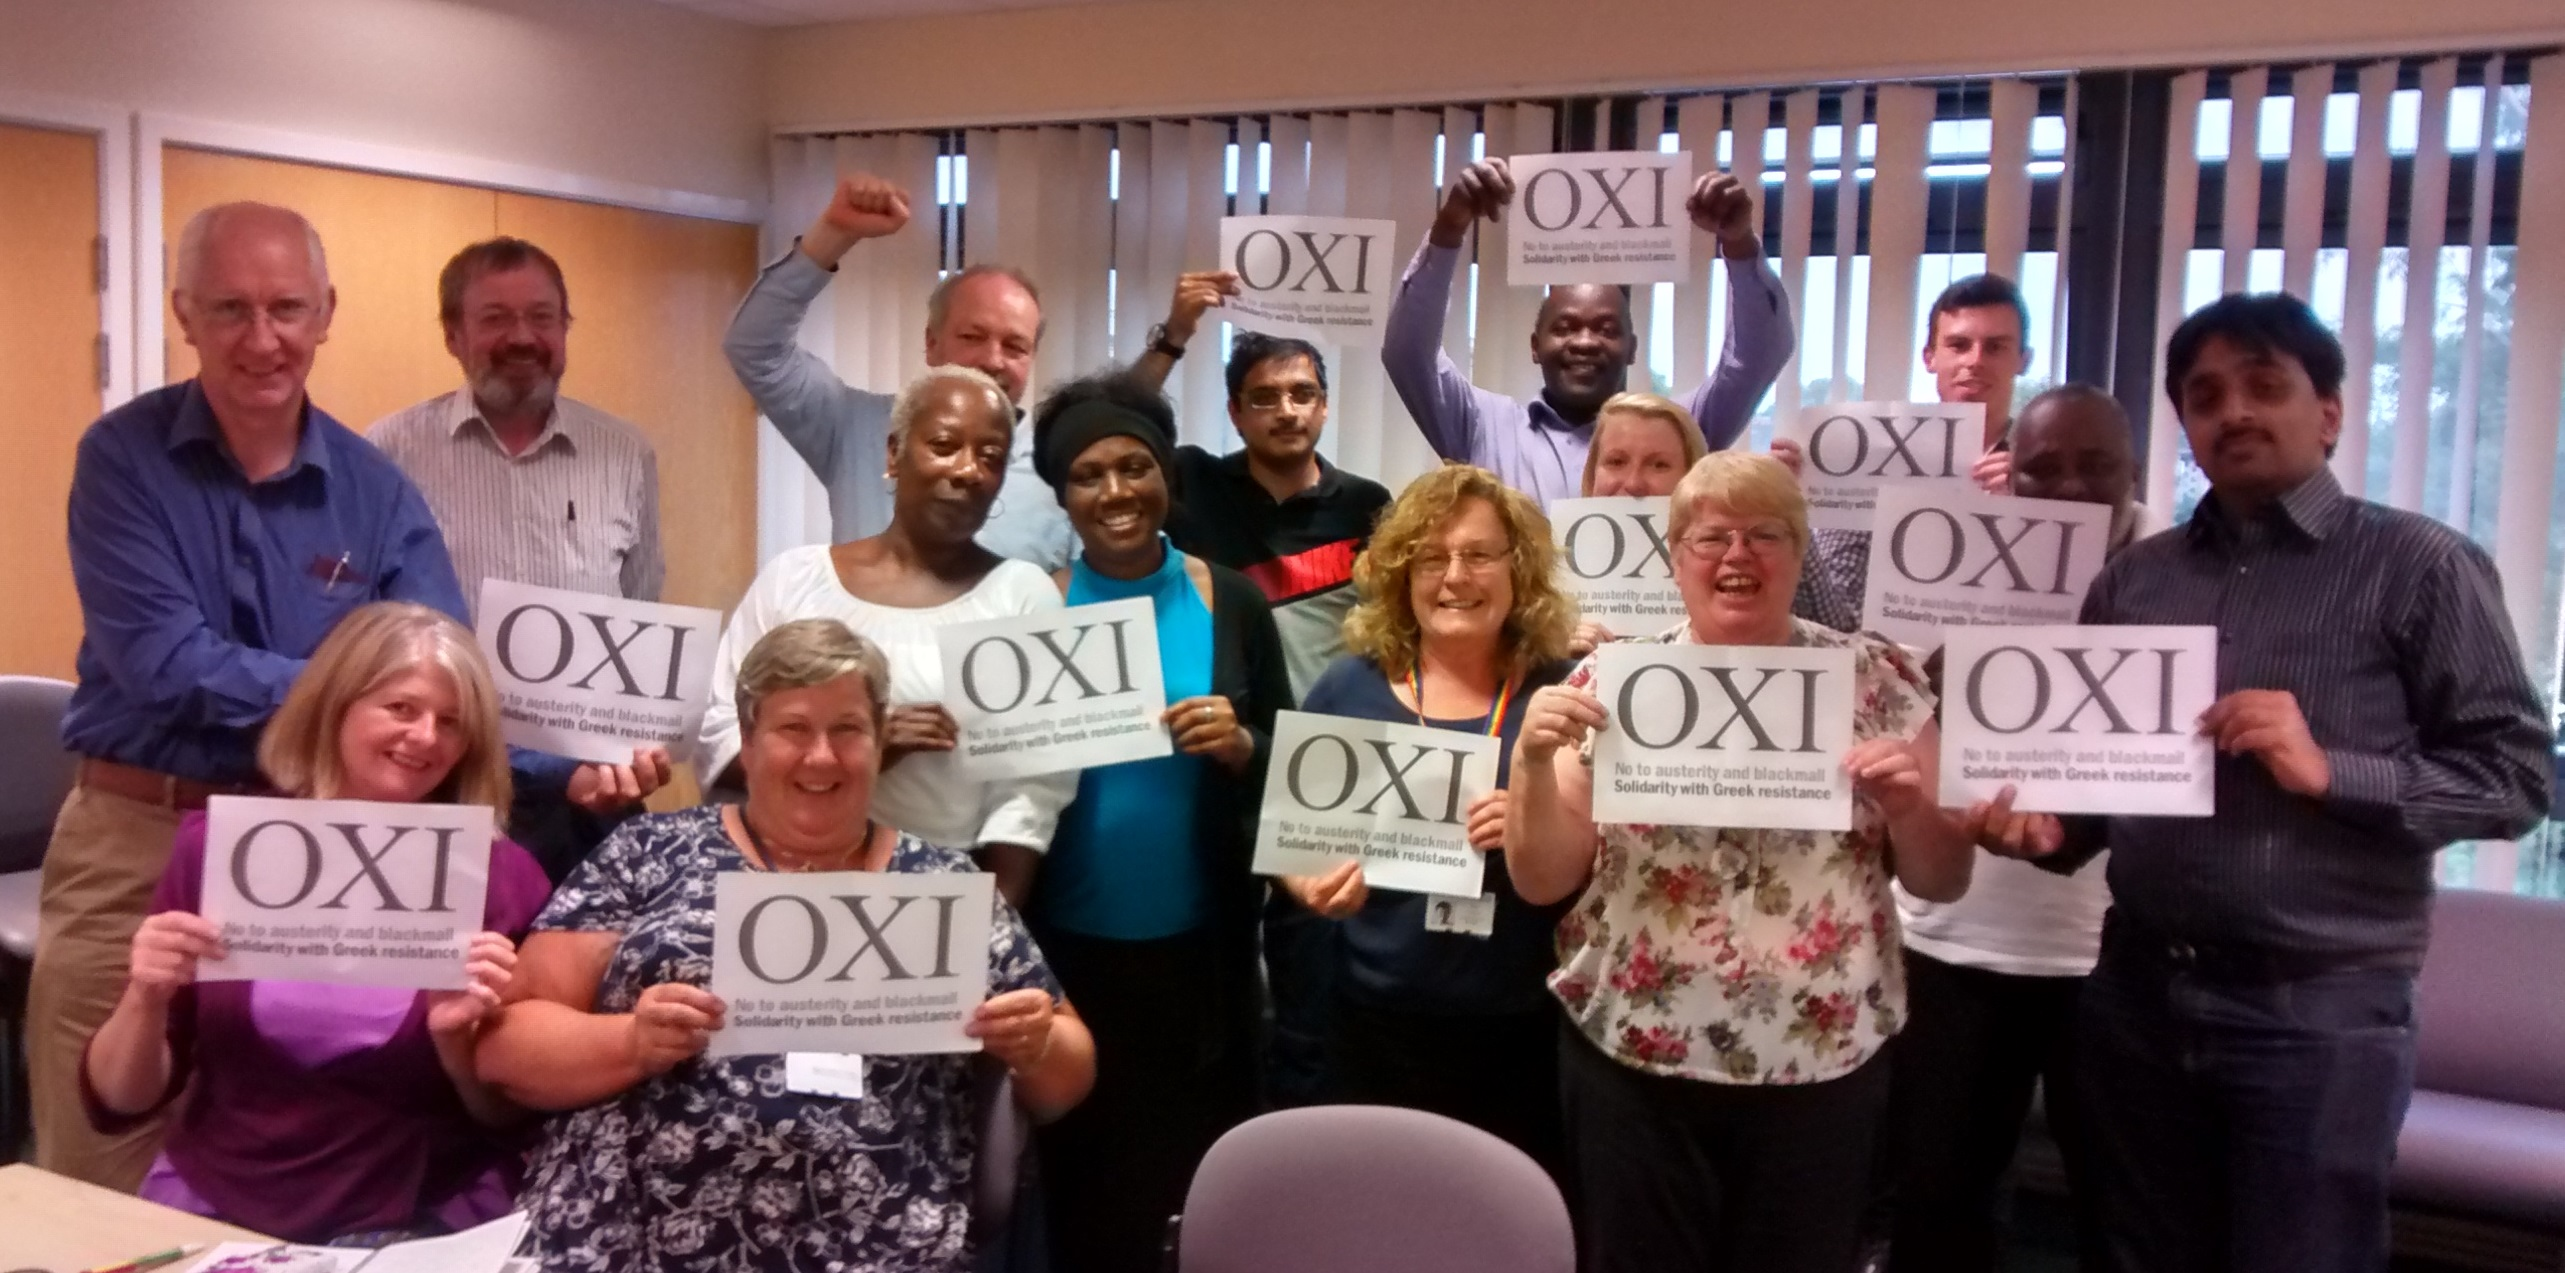 Solidarity from Oxfordshire Unison Health Branch Executive committee